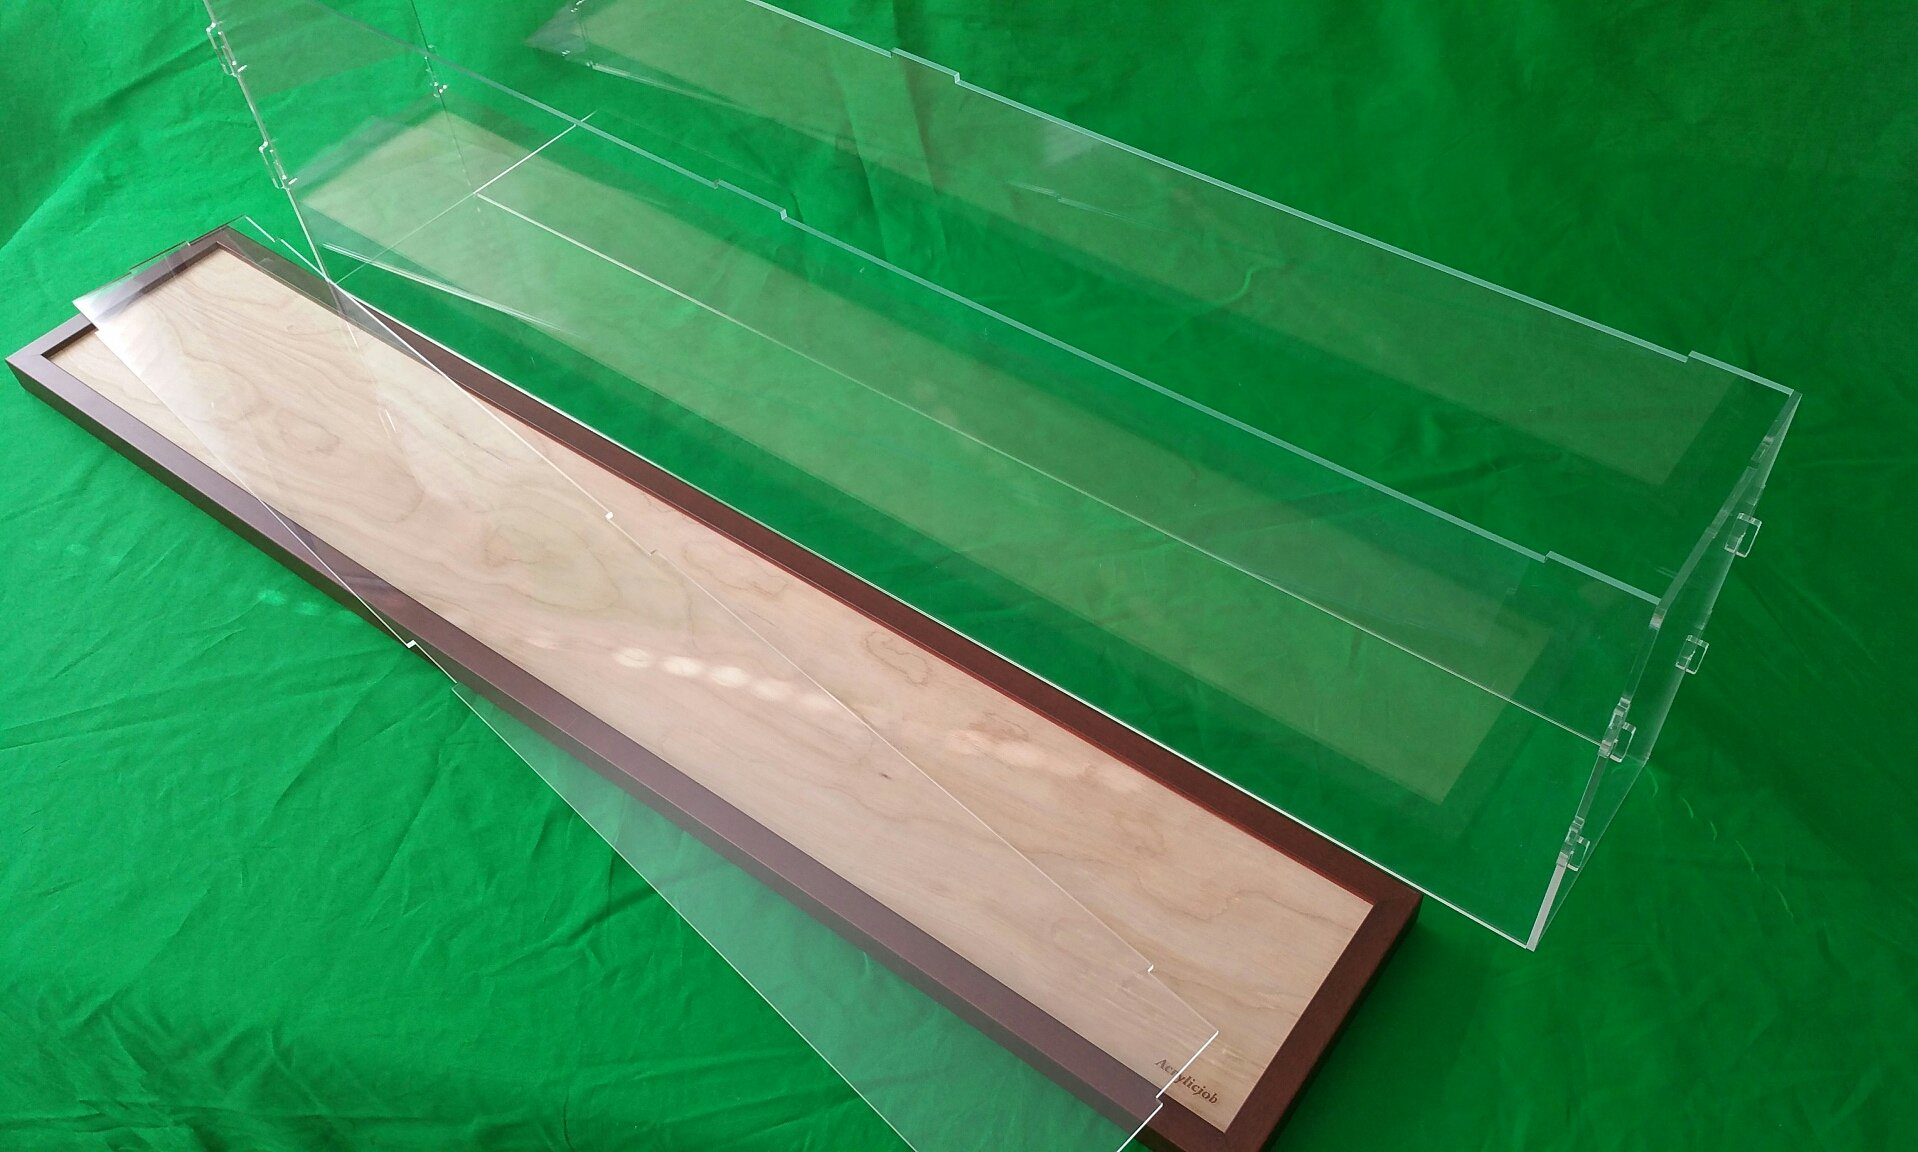 42''L x 6''W x 12''H Display Case Box for Model Cruise Ships and Ocean Liner LGB and G Scale Trains 1/32 1/23 Plexiglass Acrylic by Acrylicjob (Image #5)